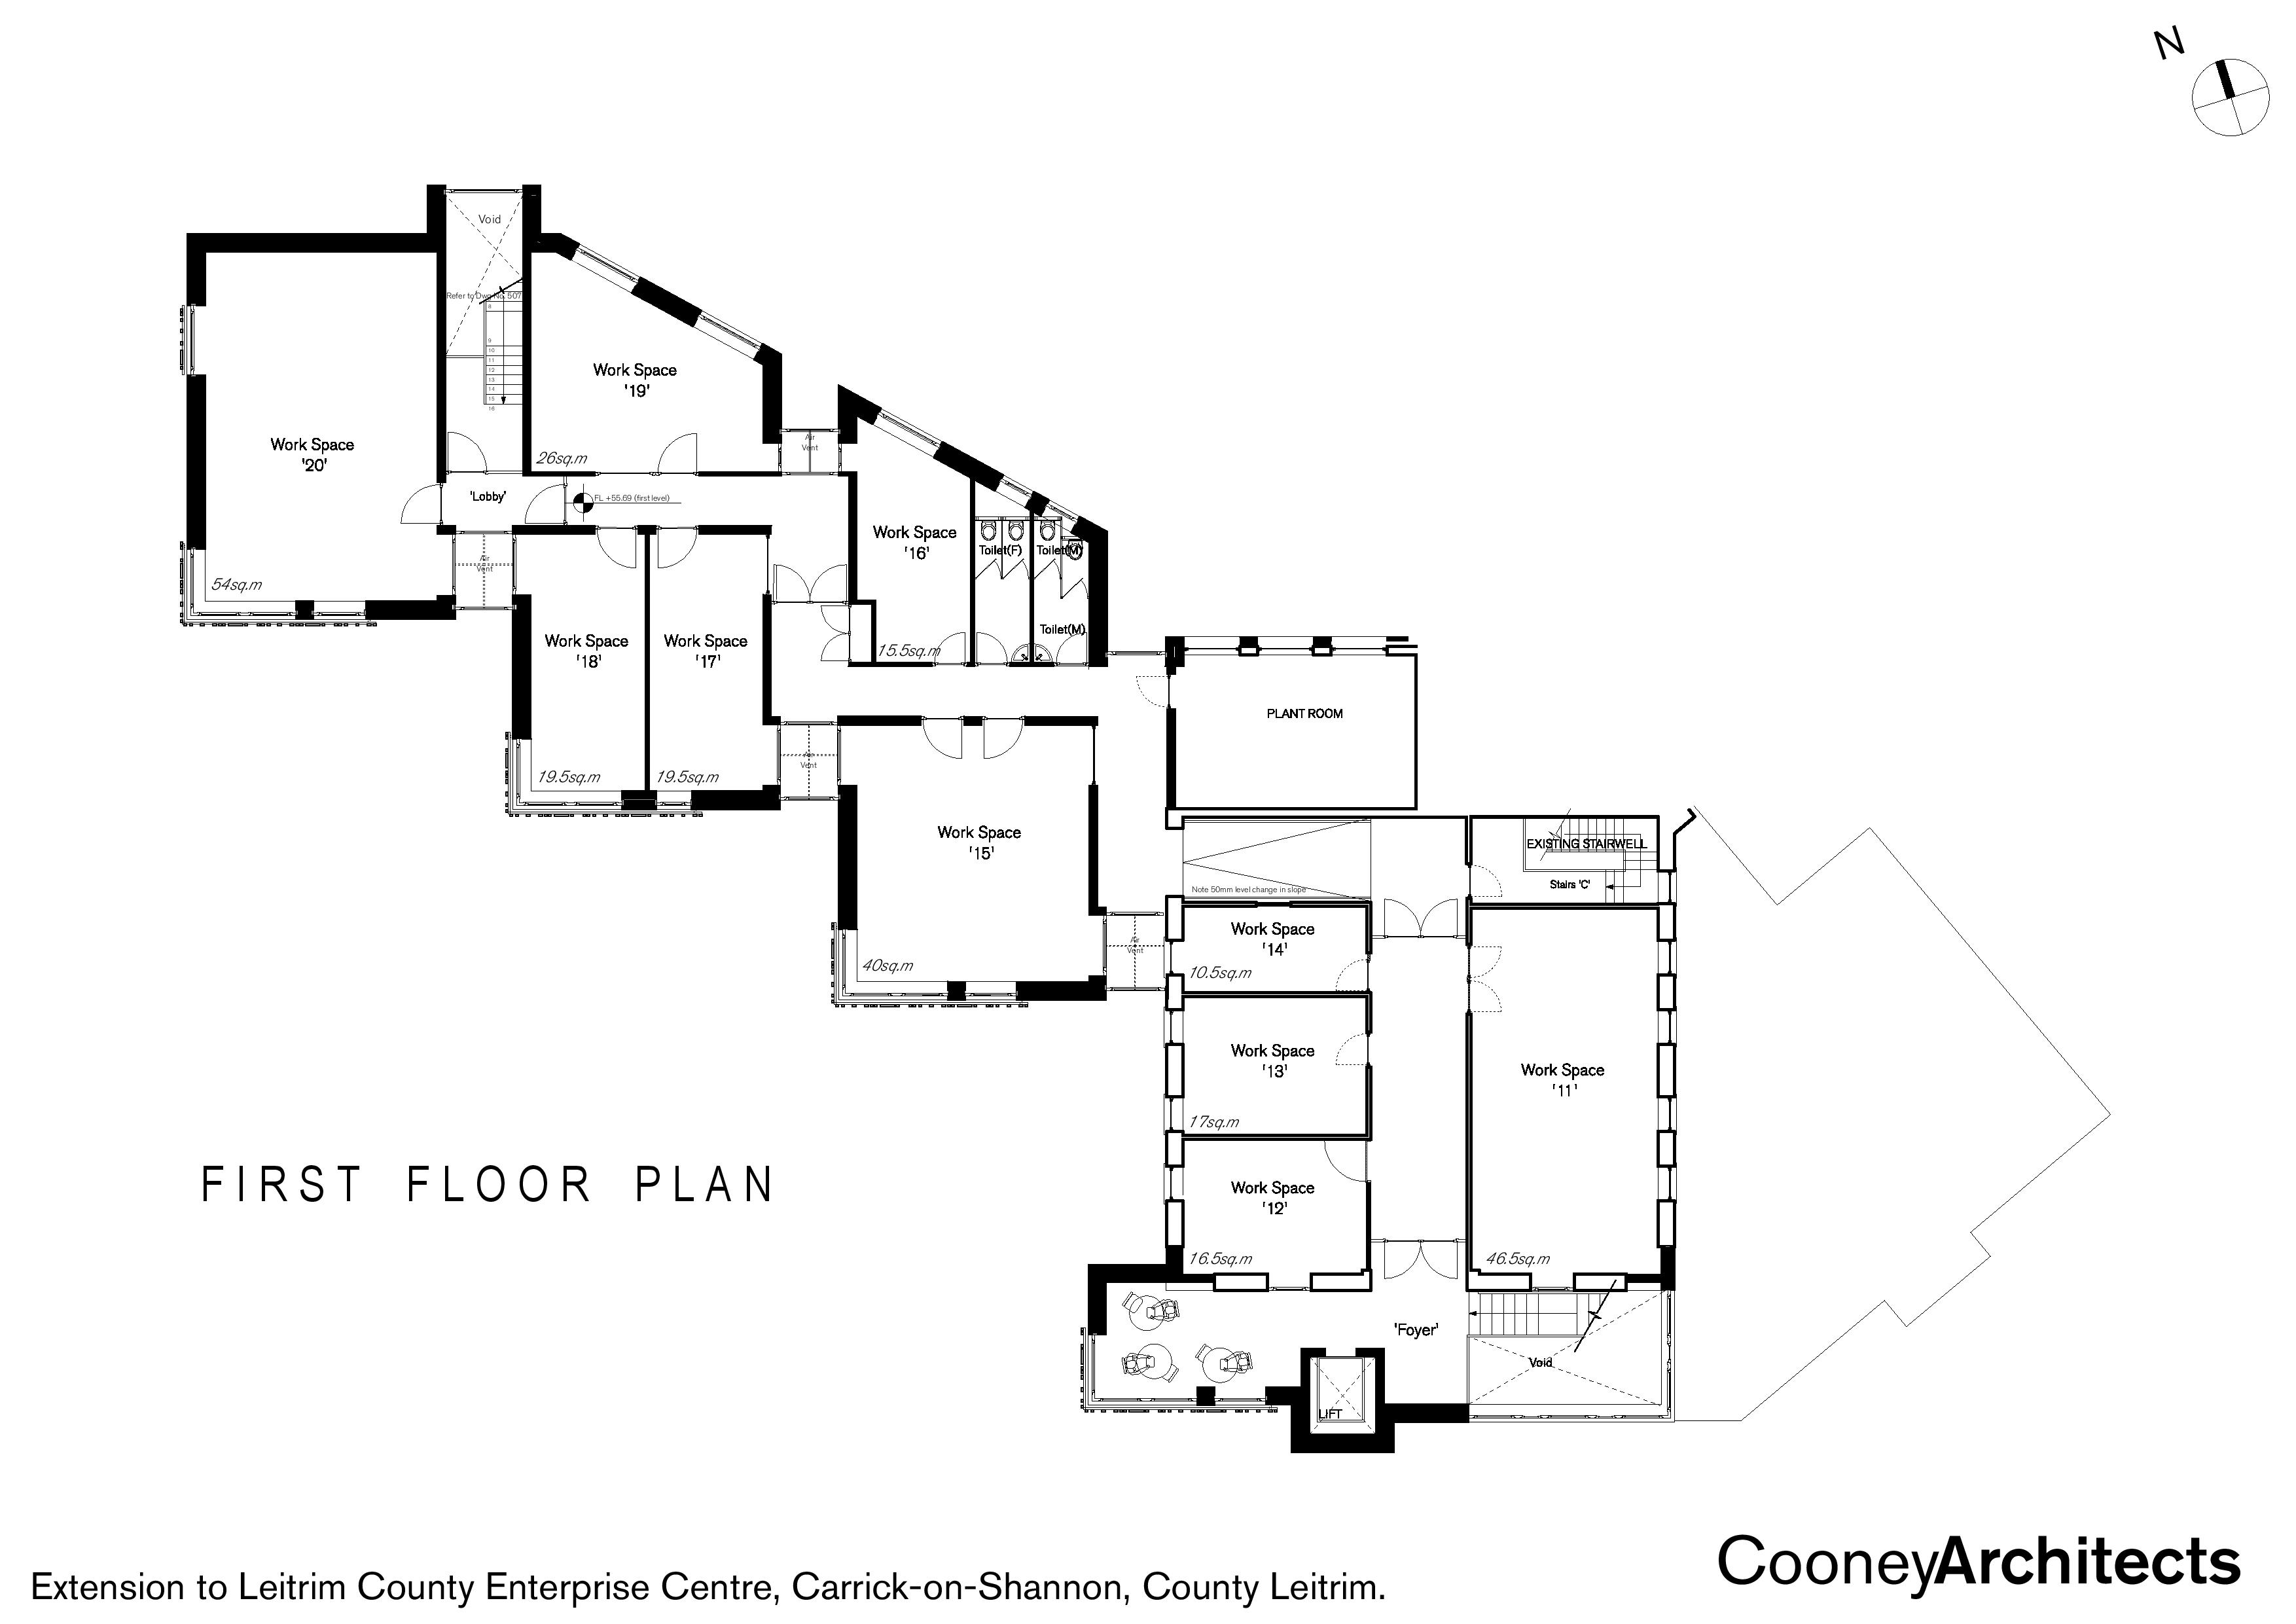 First Floor Plans for New Innovation Centre